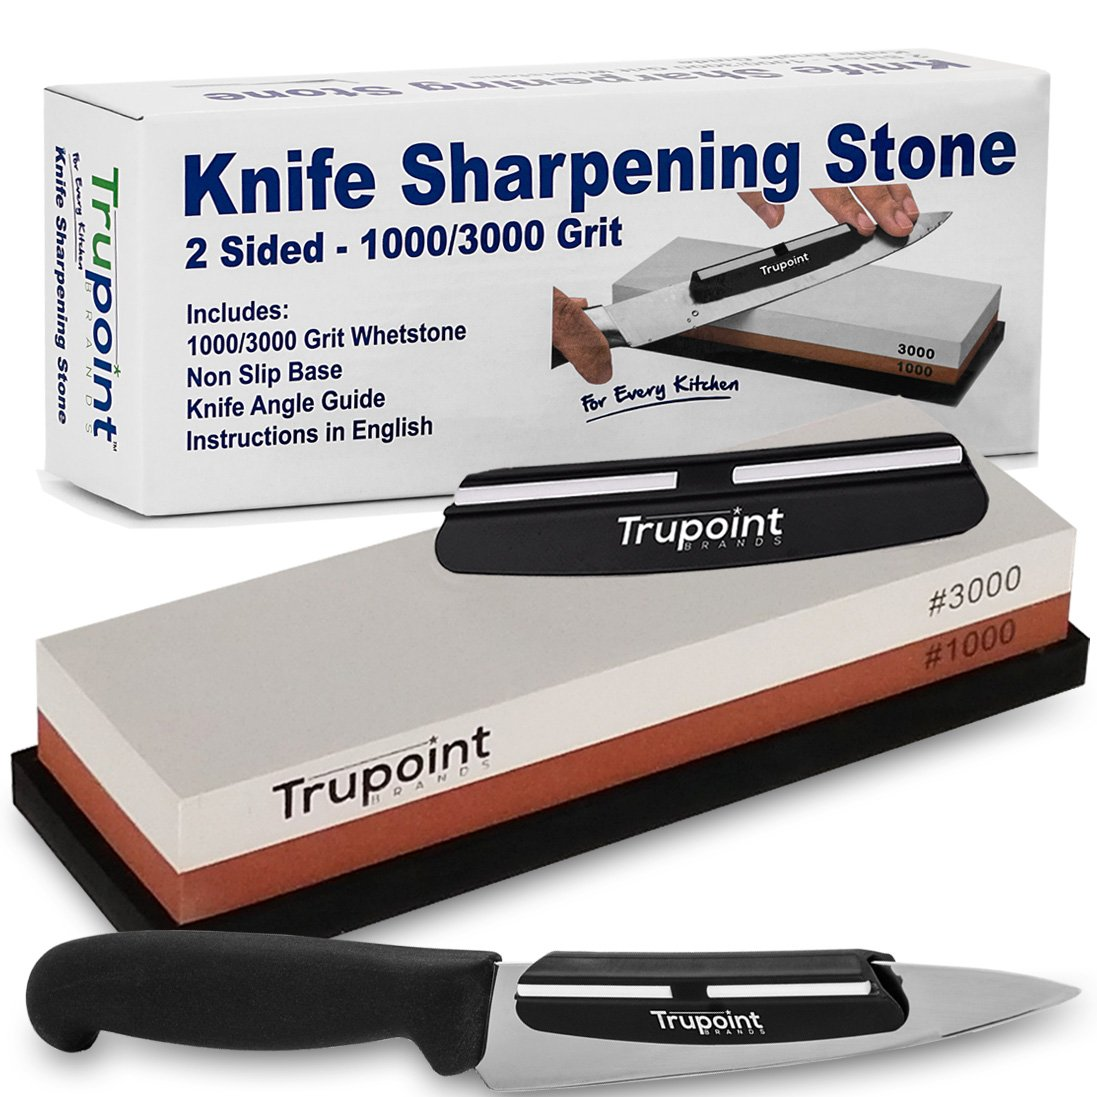 Trupoint Chefs Knife Sharpening Stone and Angle Guide System For The Perfect Edge Everytime -1000/3000 Whetstone Knife and Blade Sharpener Kit – NO RISK - Make Your Knives Razor Sharp Or Full Refund